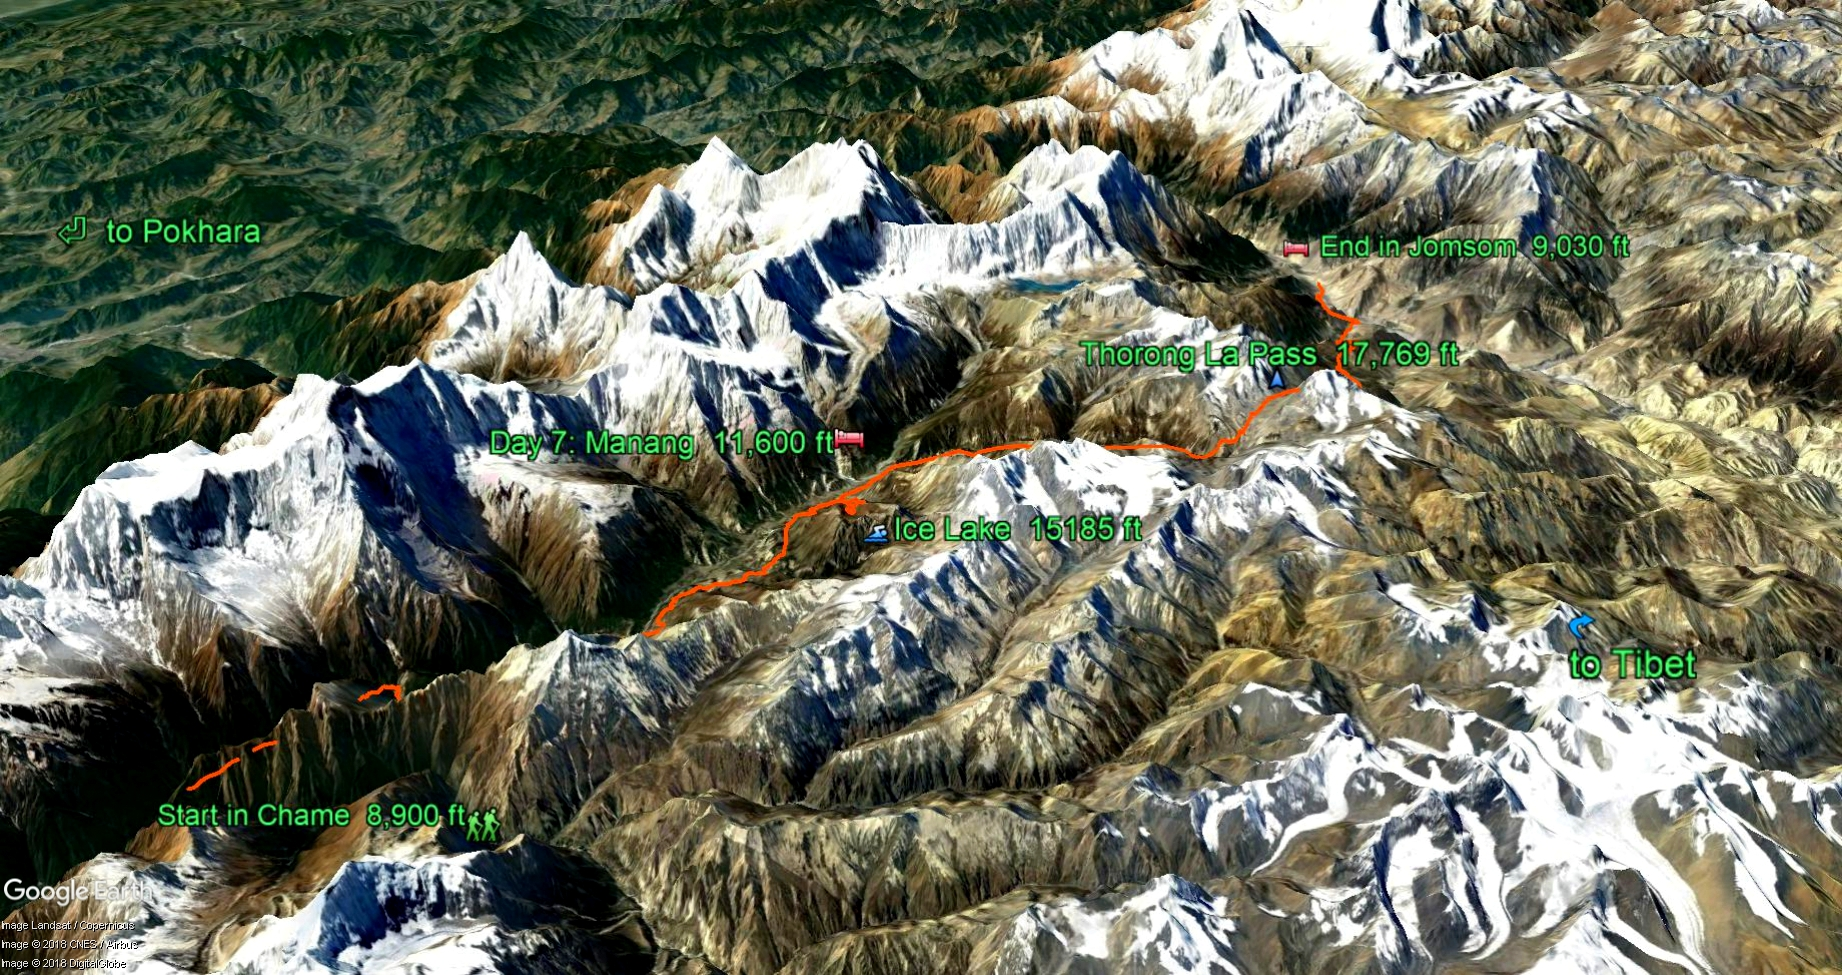 A Google Earth snapshot of our route through the Annapurna Himalaya